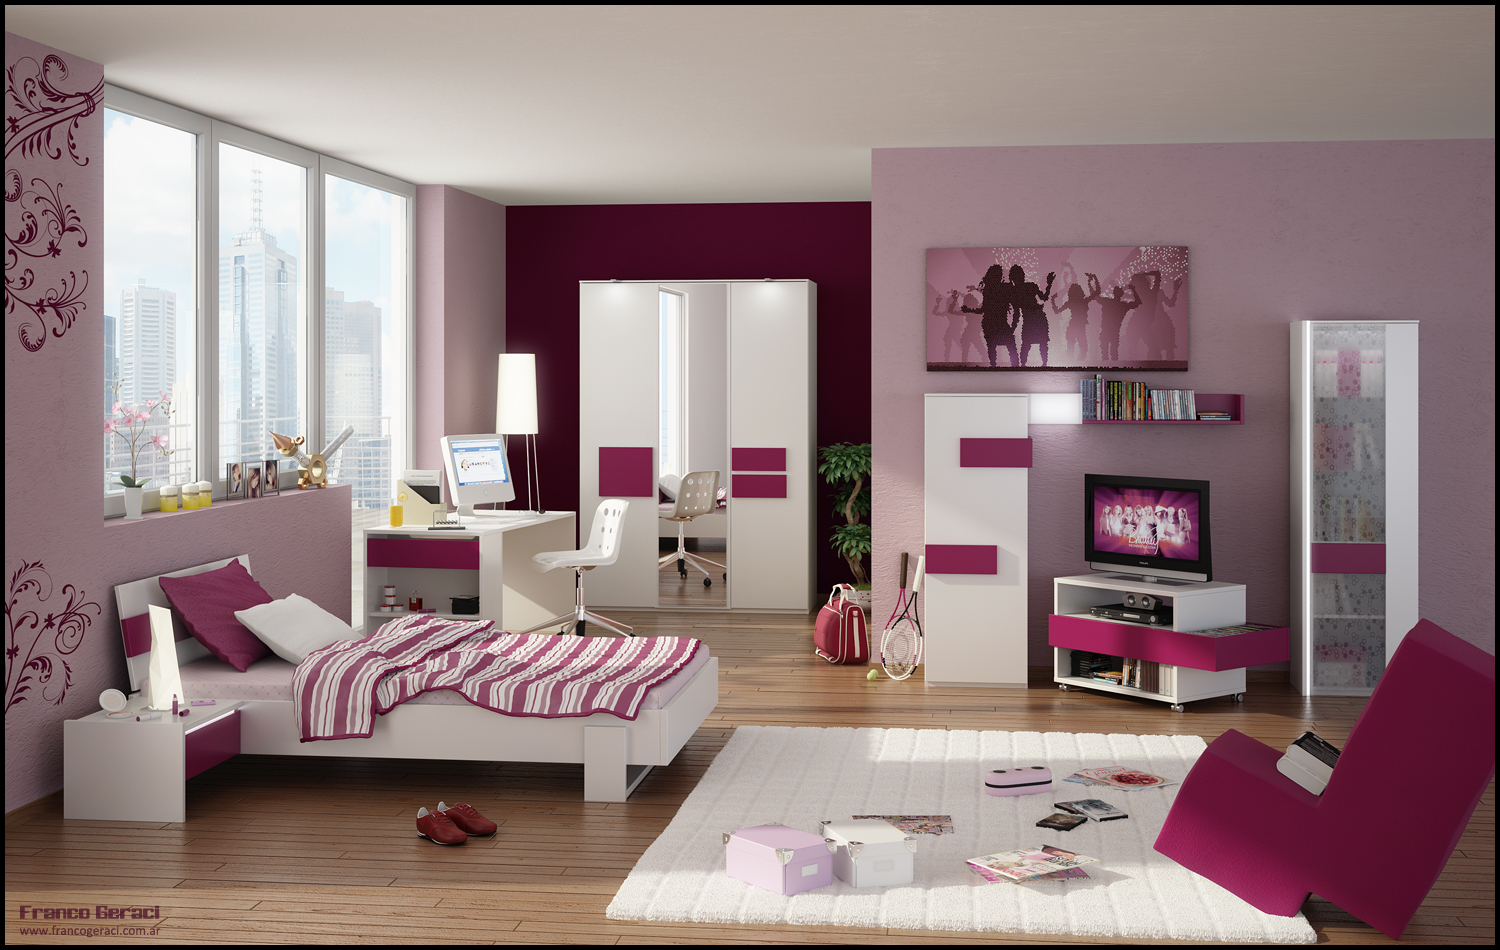 Teenage room designs for Decorating teenage girl bedroom ideas